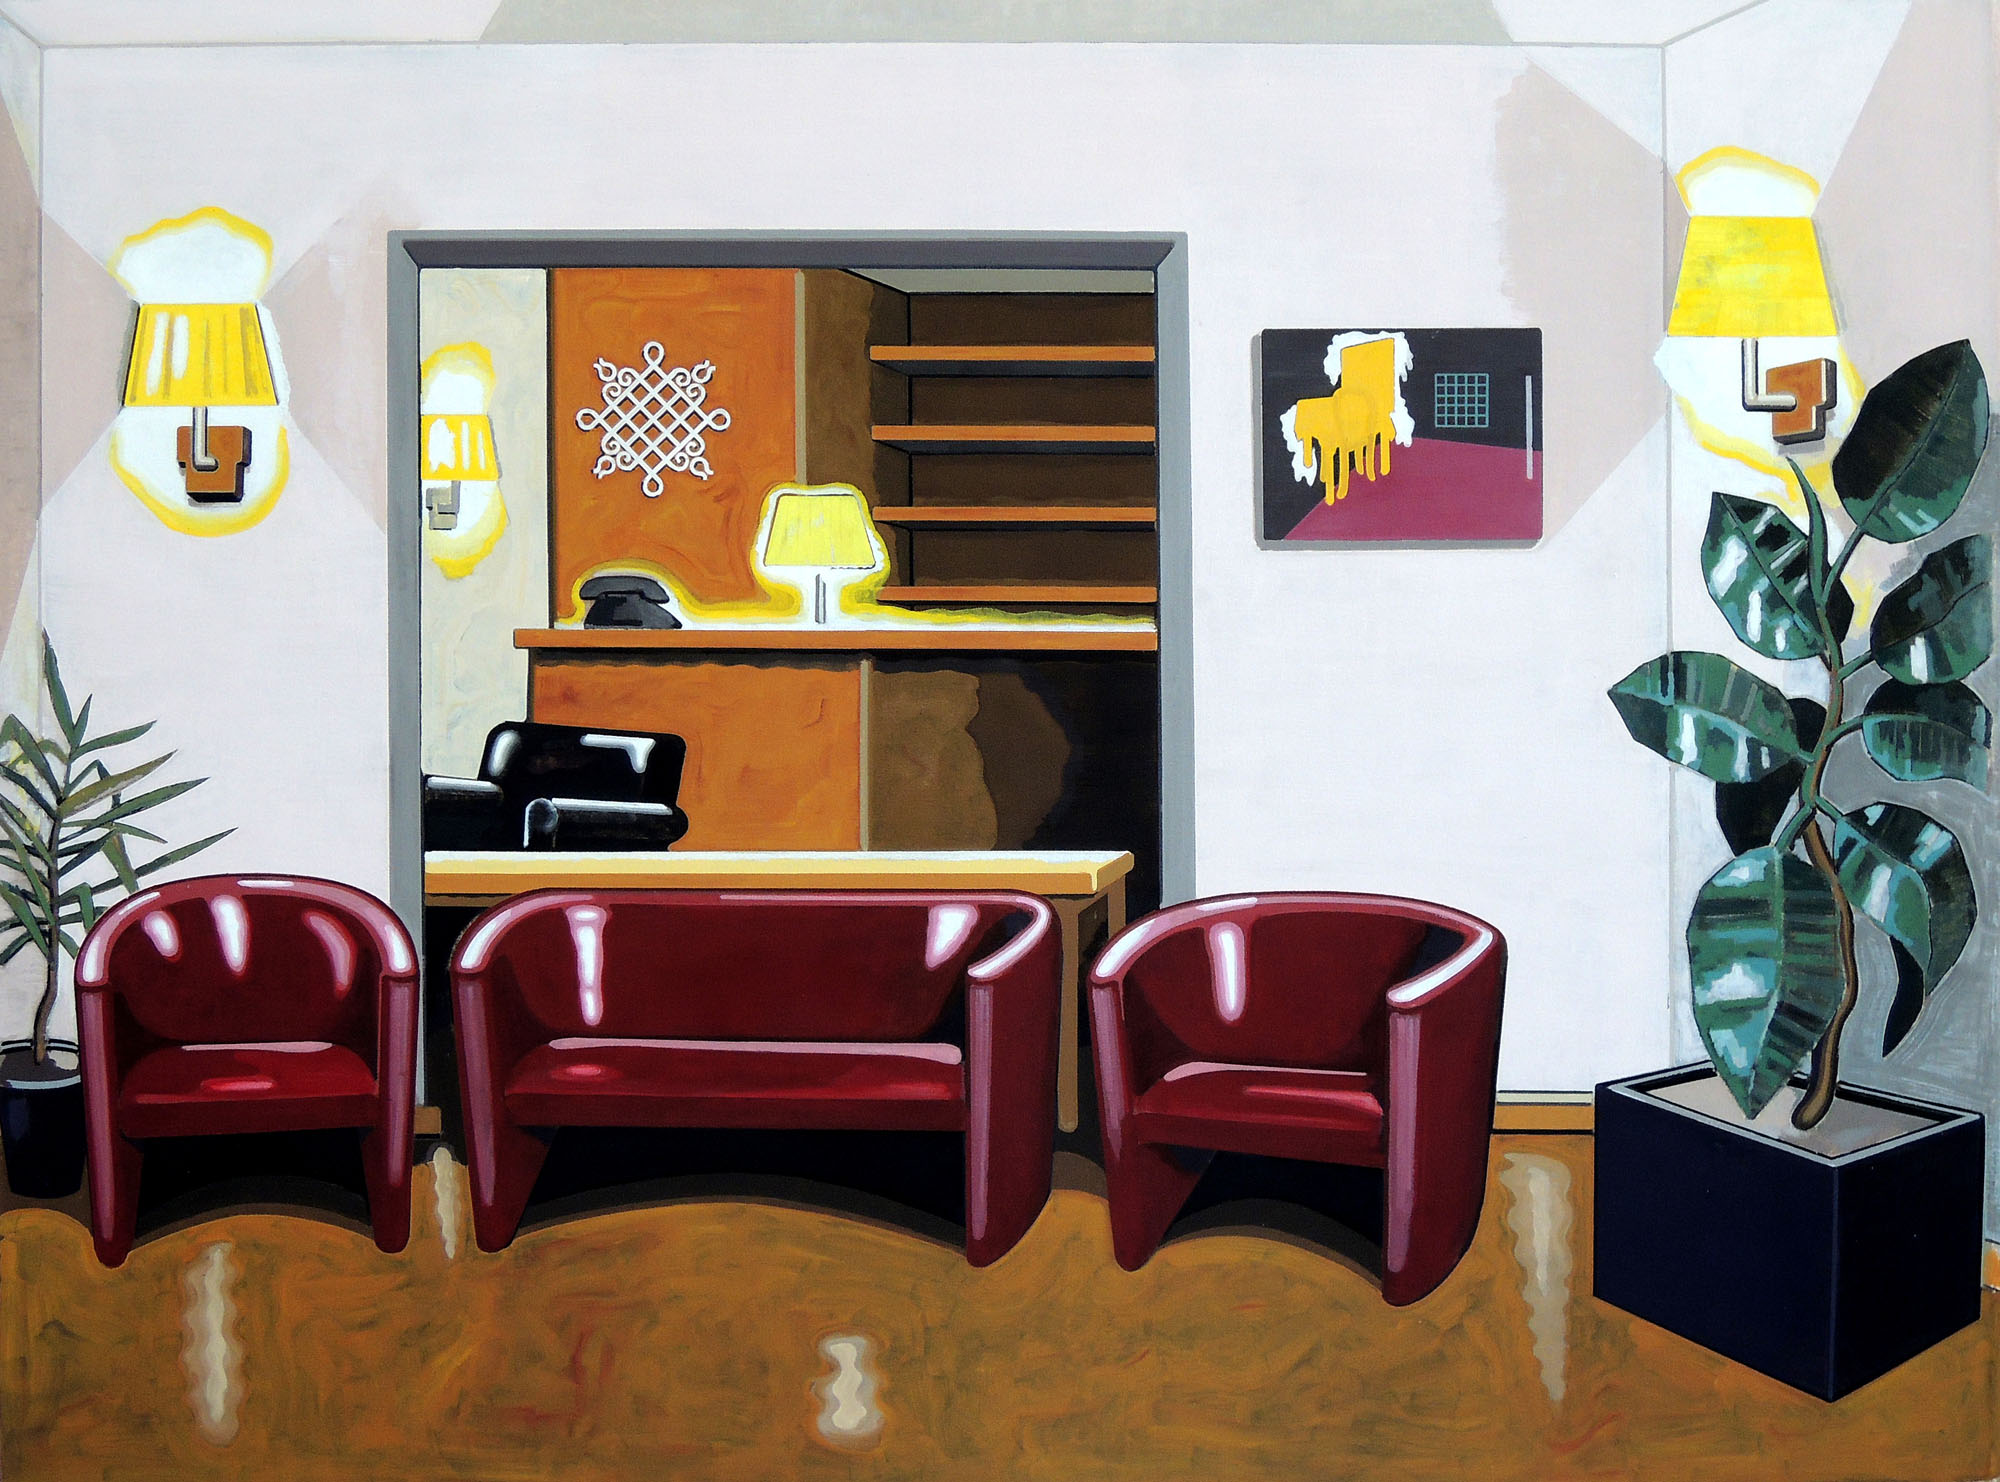 Hotel Europa, oil on canvas, 160 x 120 cm, 2013